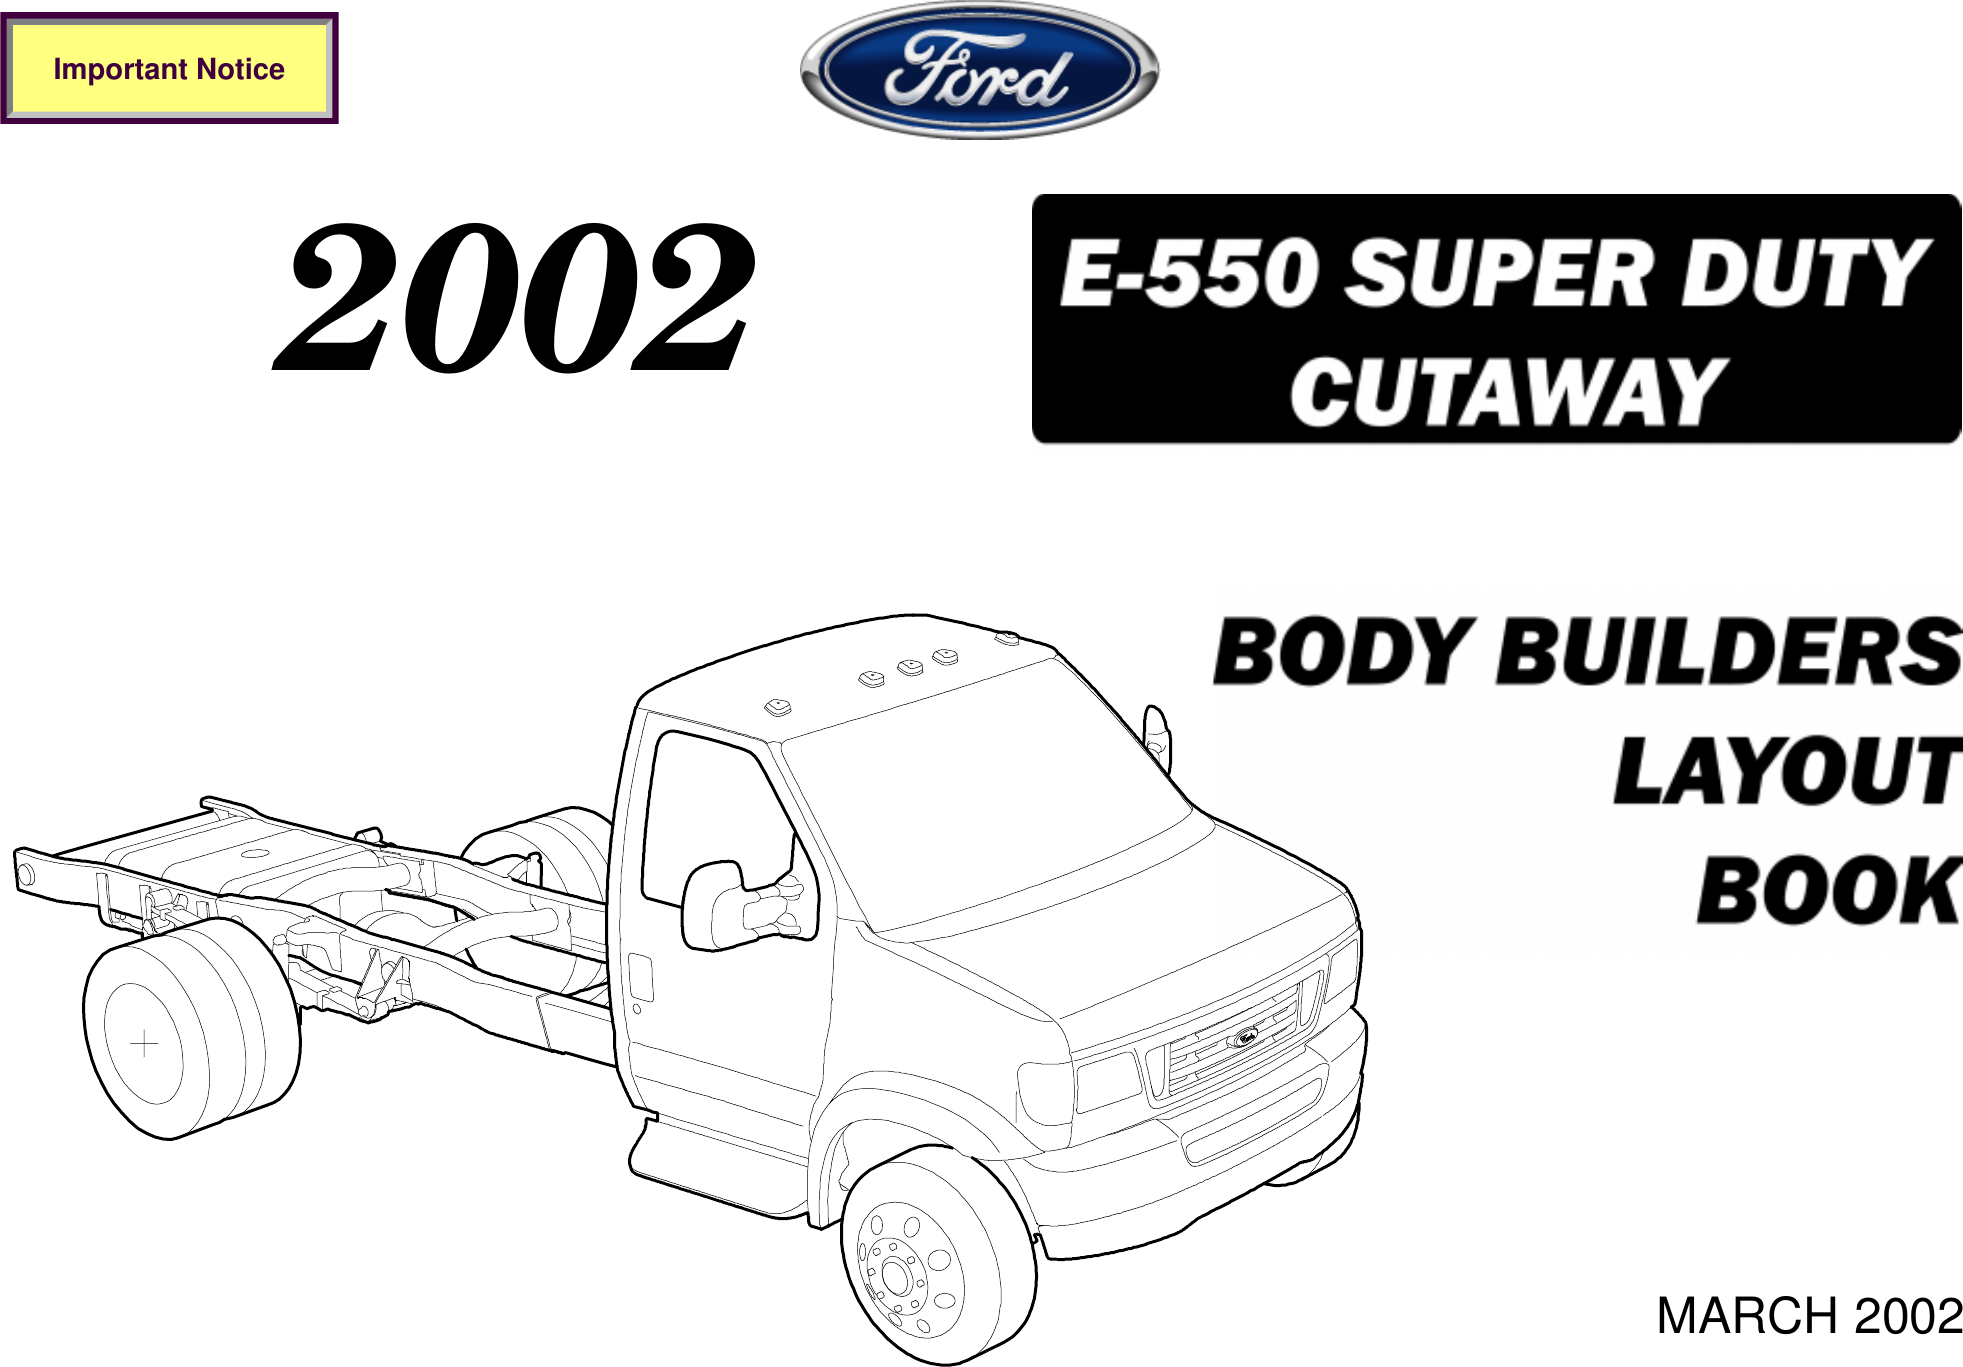 Ford E 550 Users Manual 2002 Super Duty Cutaway Body Builders Layout 4r100 Wiring Harness Clip Book